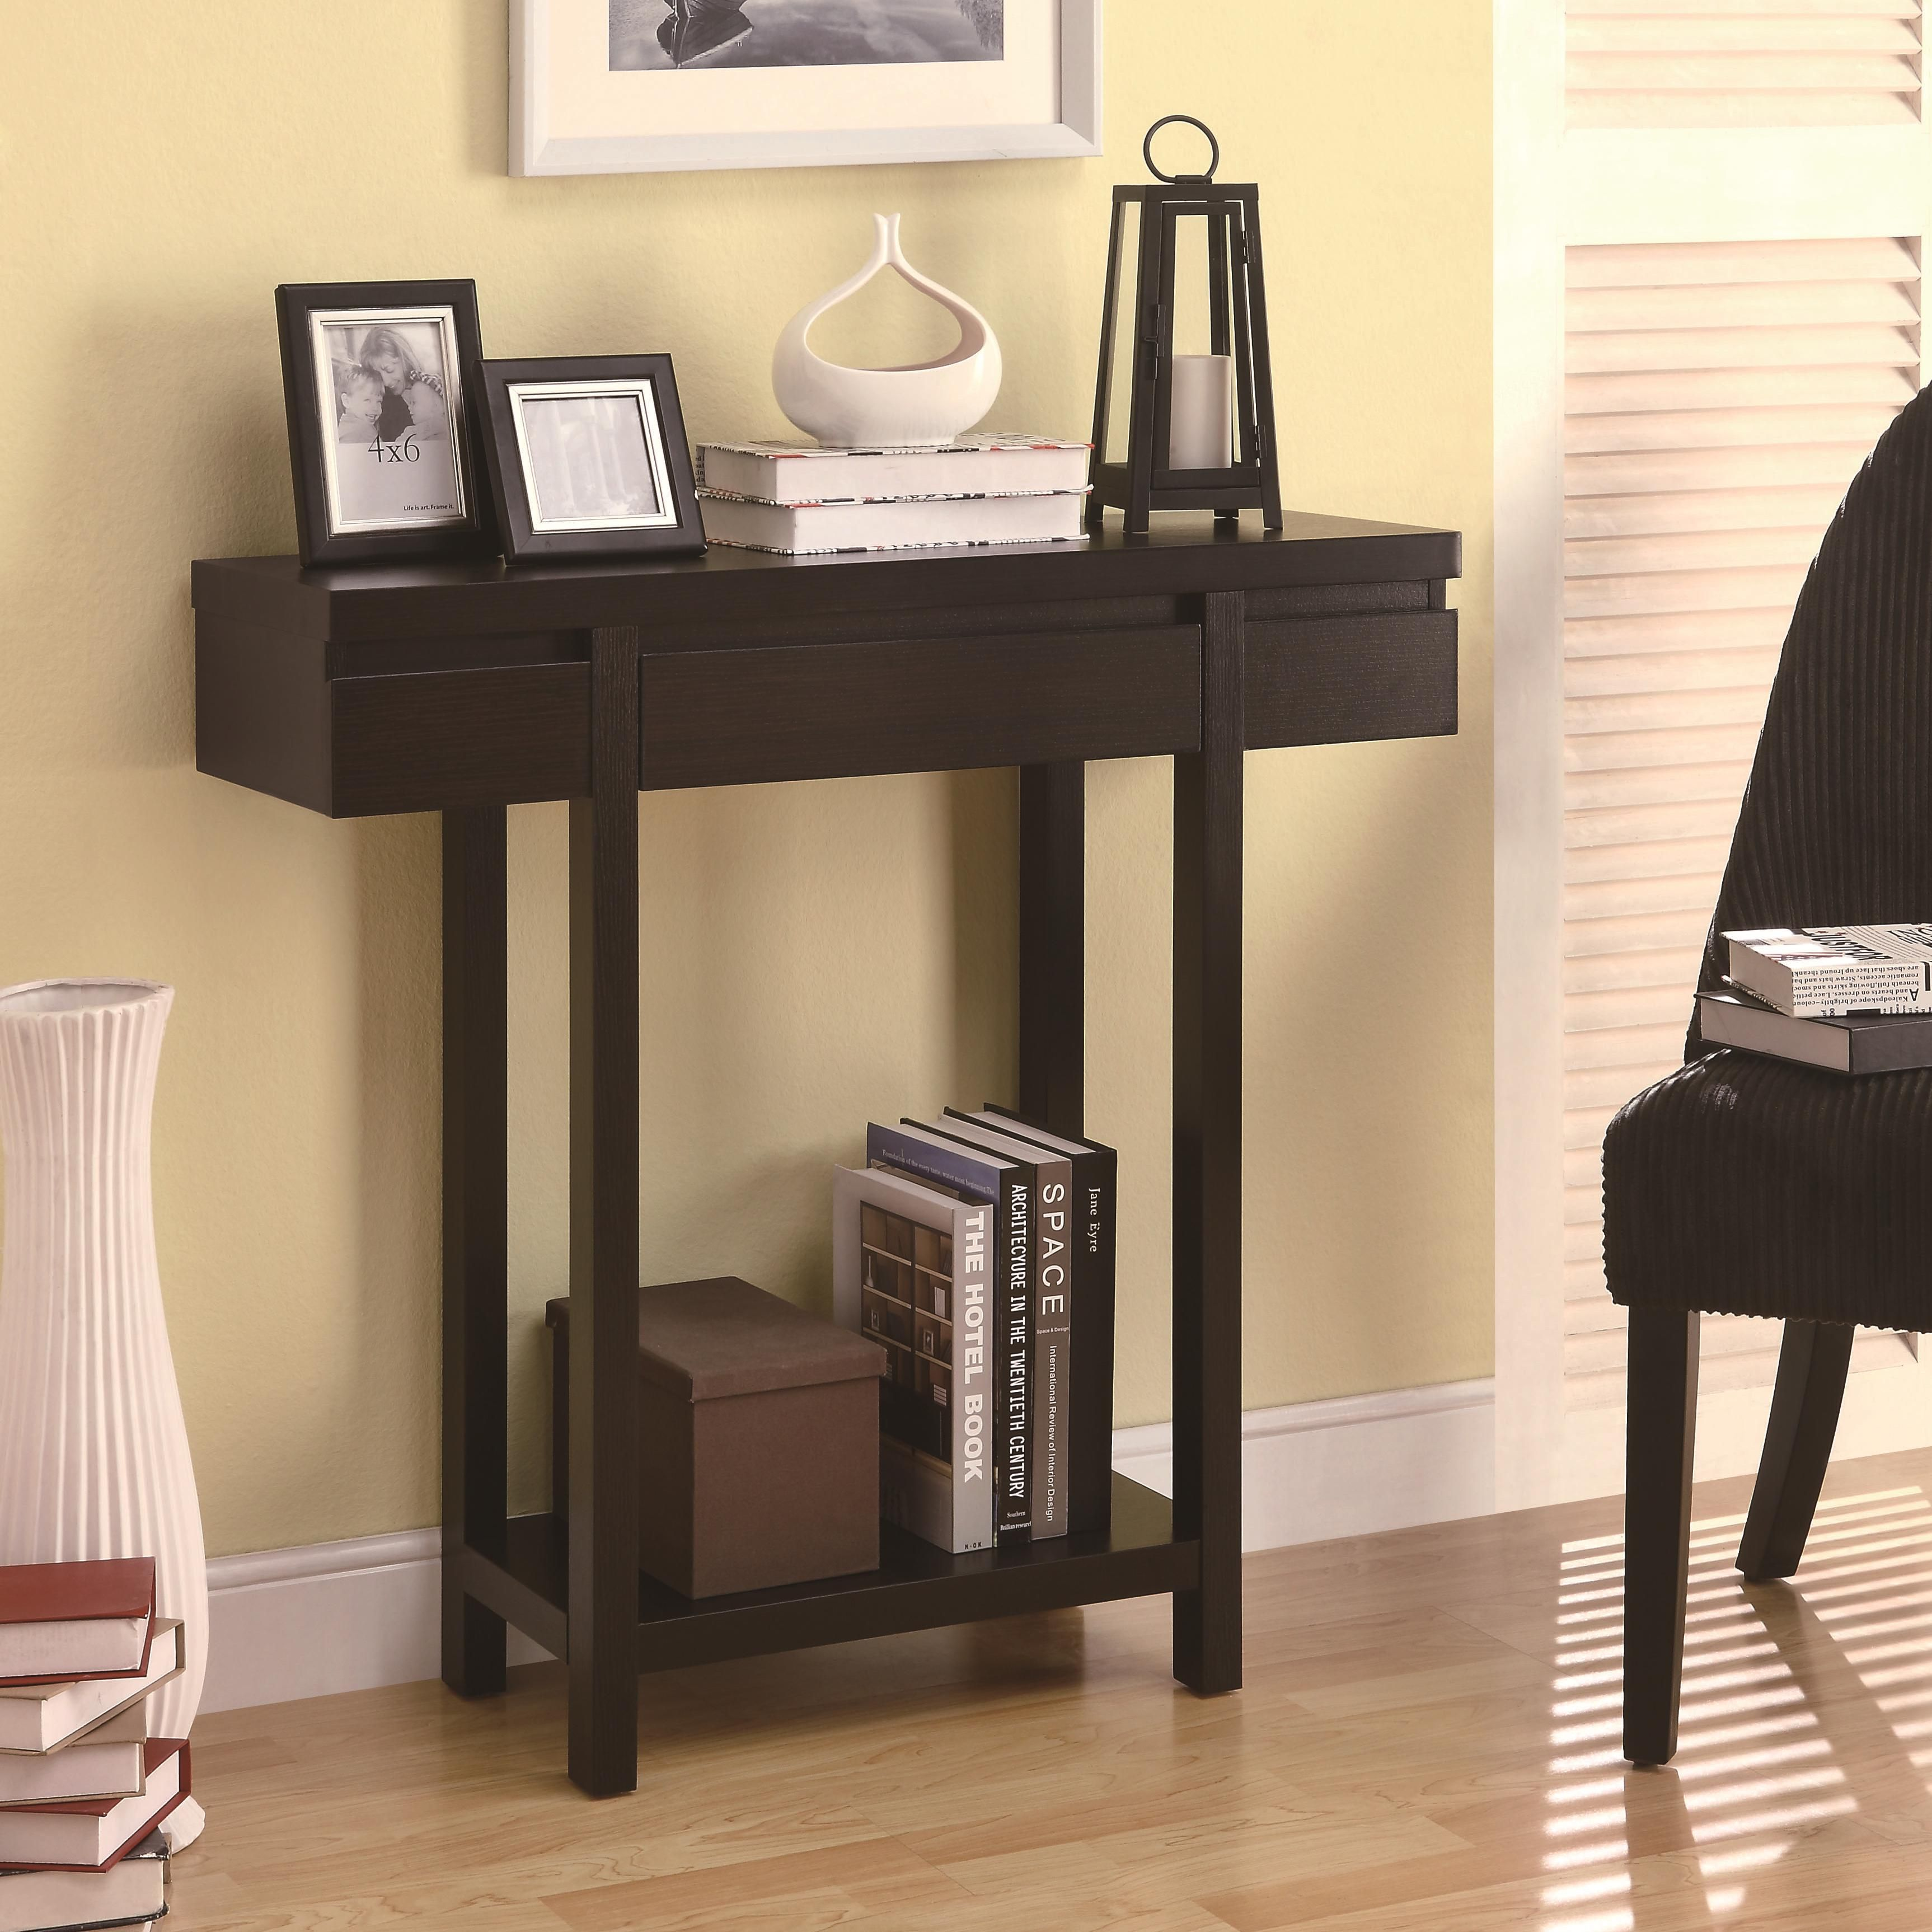 Entry Hall Furniture accent tables modern entry table with lower shelfcoaster